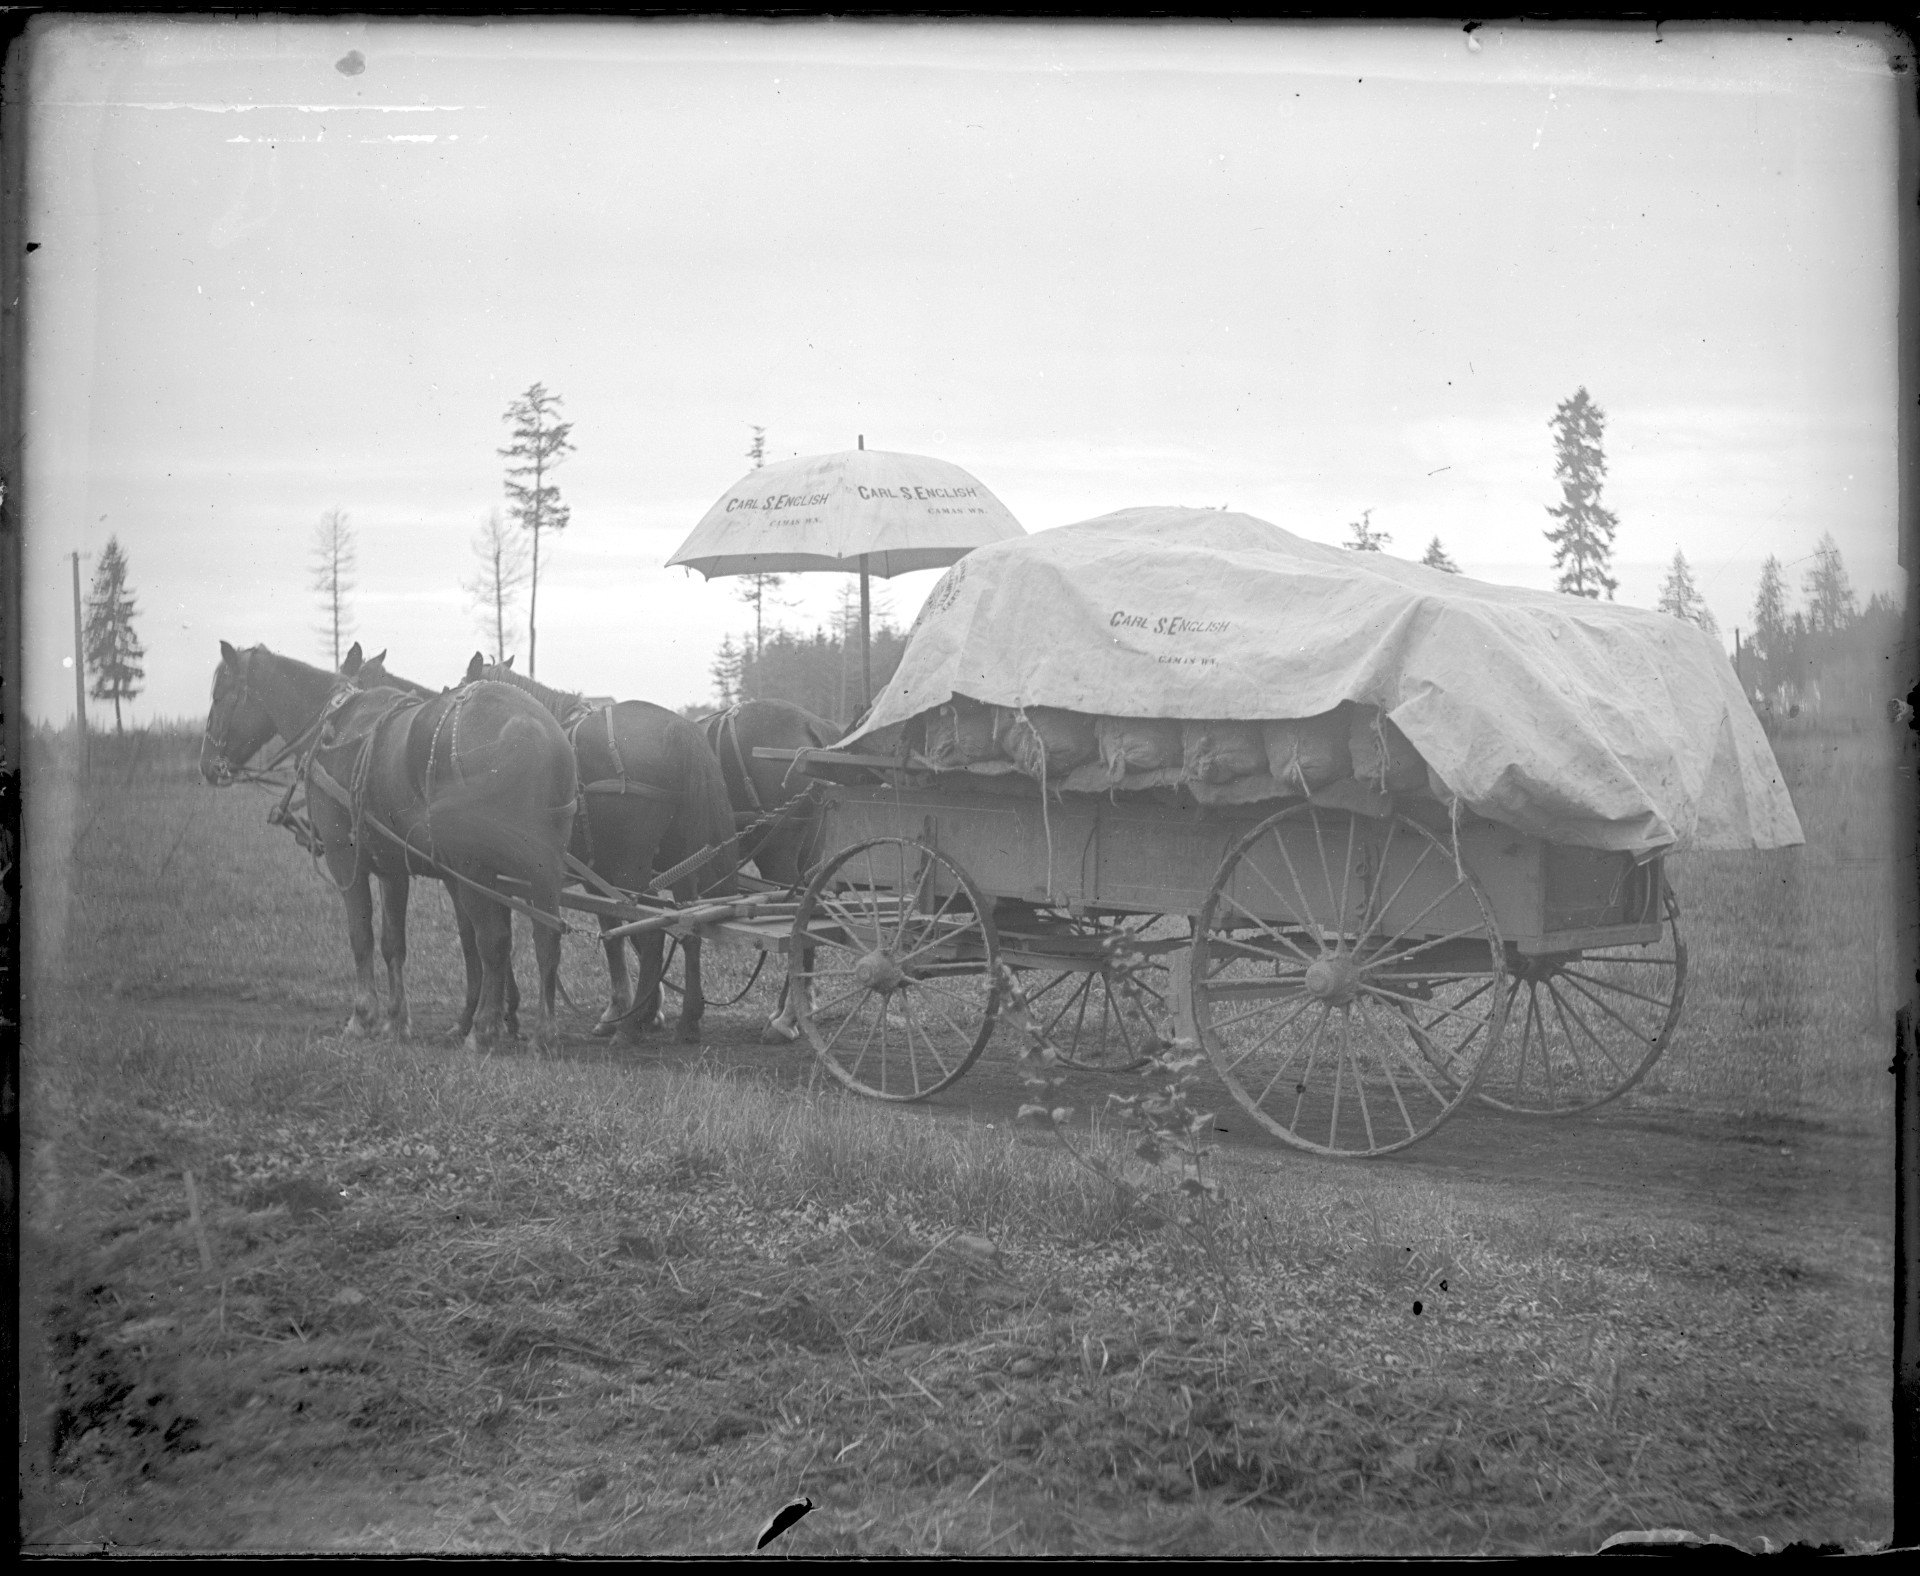 Potatoes on the way to the Fort Vancouver Barracks to feed the soldiers housed there.